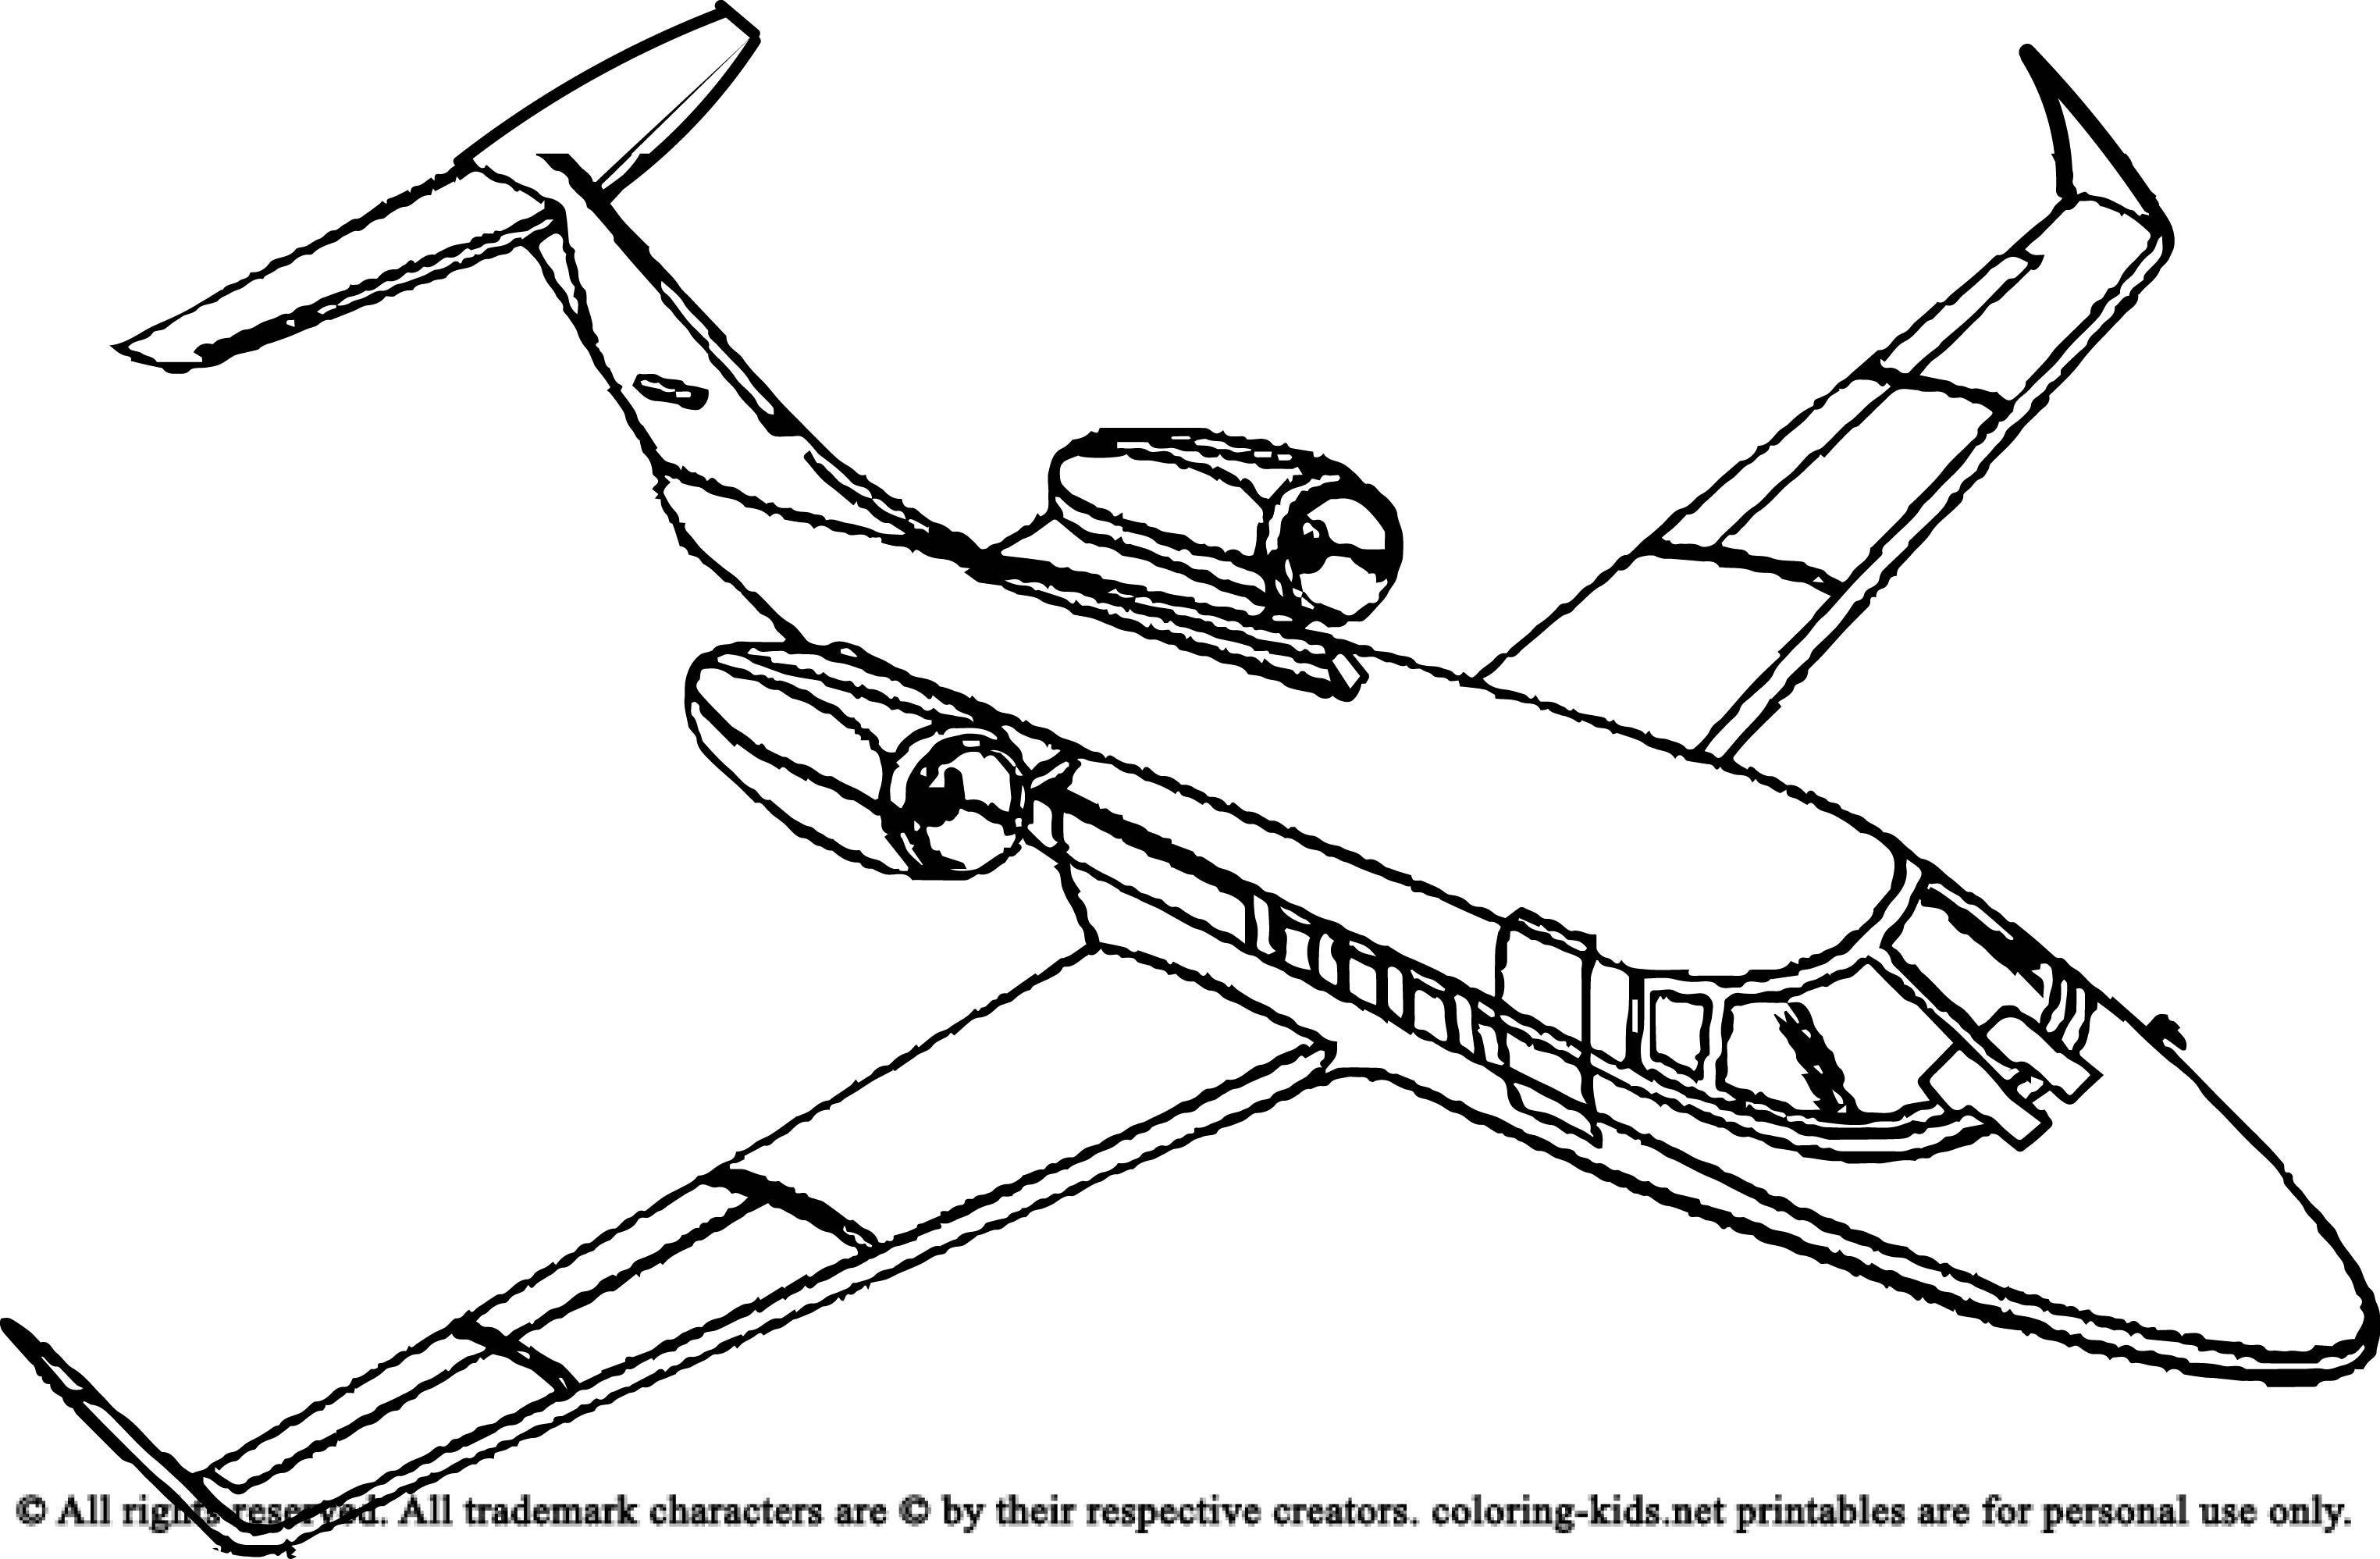 Airplane Coloring Page Airplane Coloring Book New Image 22 Jet Plane Coloring Pagescoloring Entitlementtrap Com Airplane Coloring Pages Coloring Pages To Print Kids Printable Coloring Pages